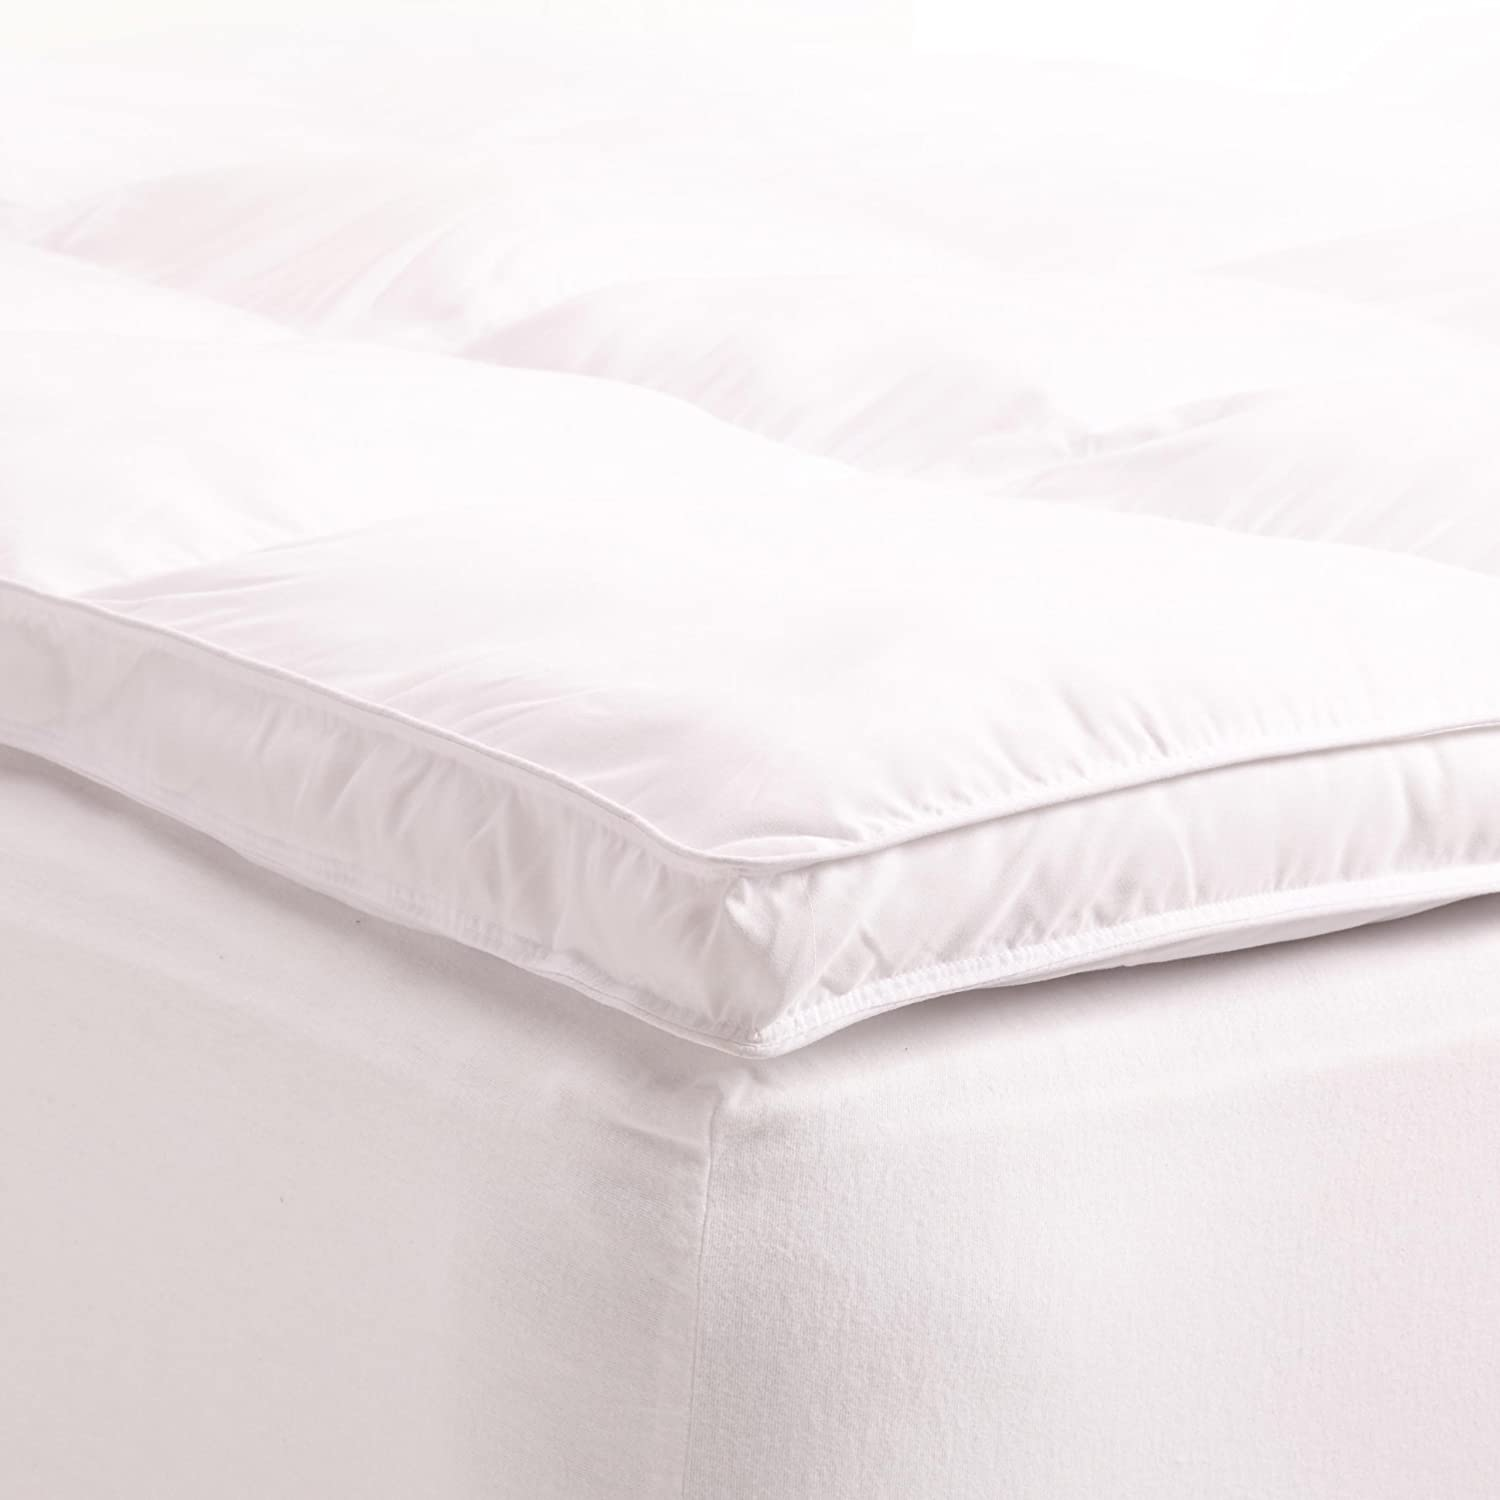 Superior Full Mattress Topper, Hypoallergenic White Down Alternative Featherbed Mattress Pad – Plush, Overfilled, and 2 Thick